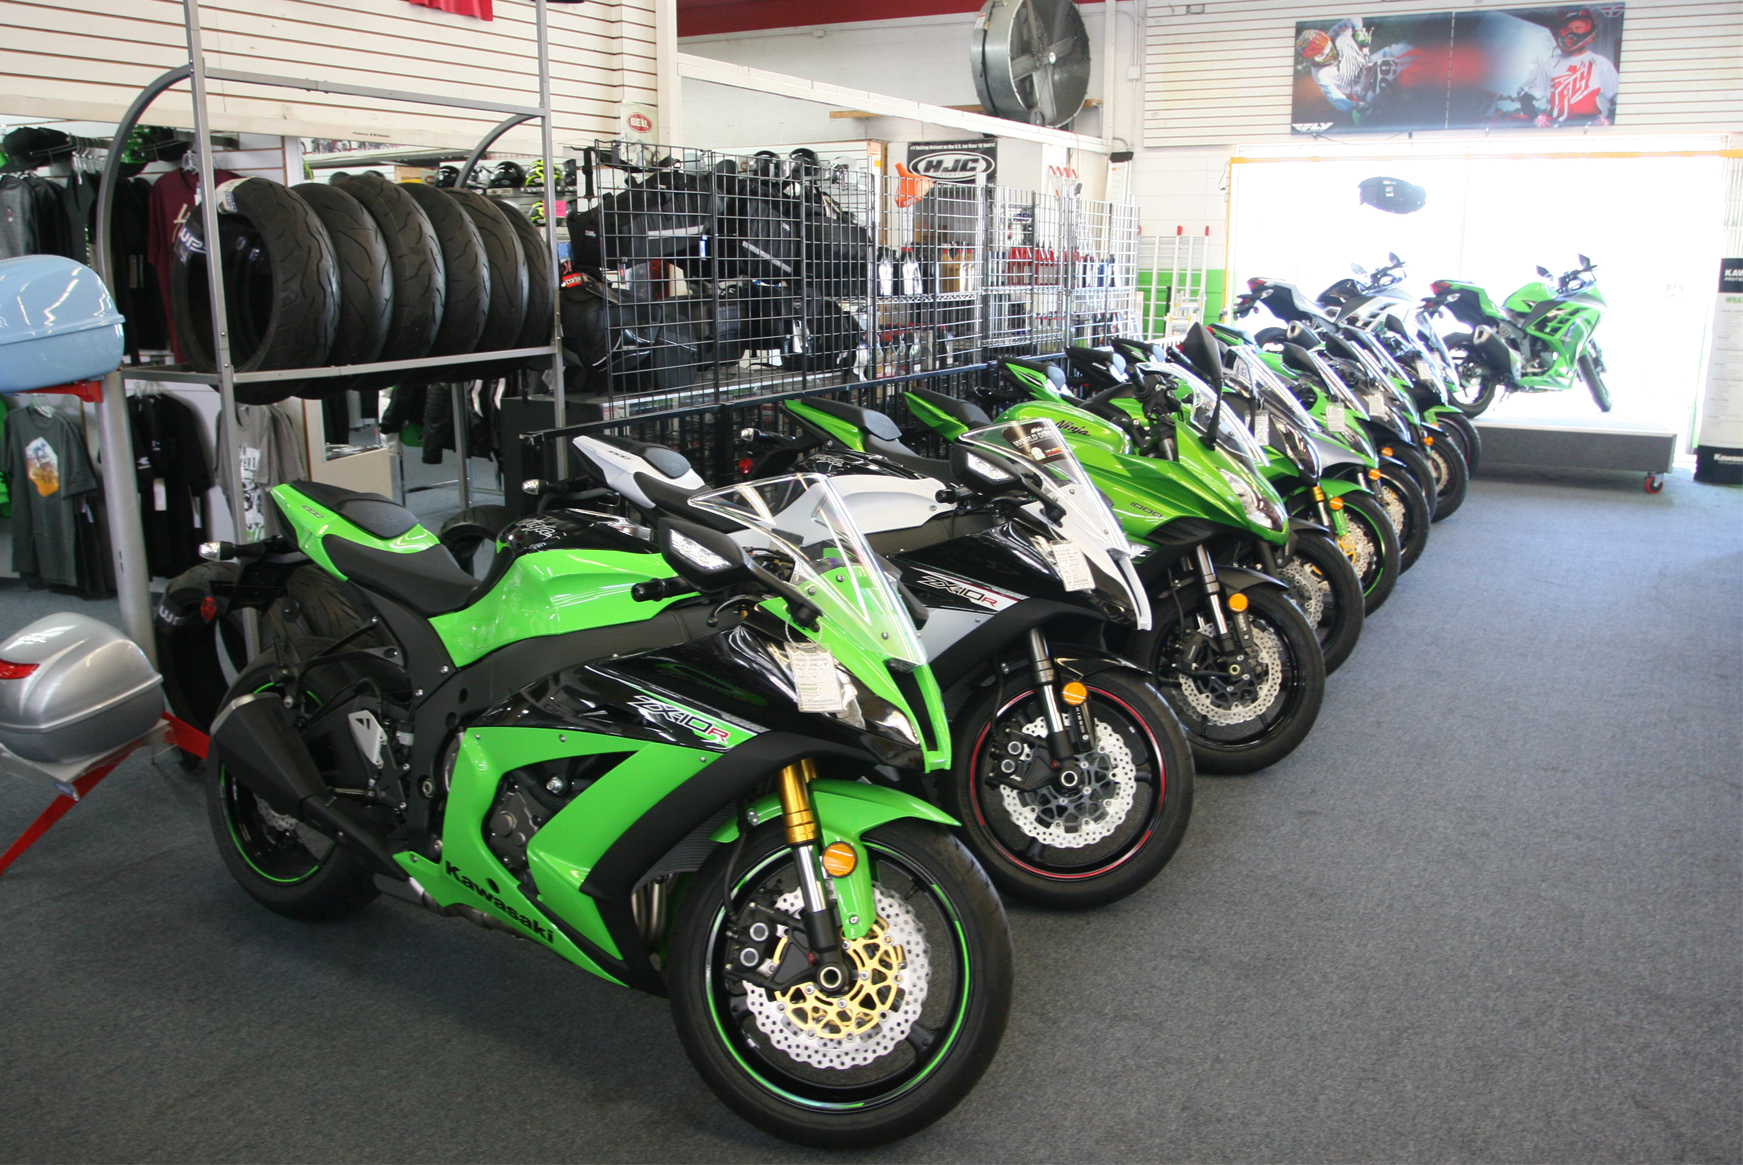 Pacific coast highway powersports in marina del rey ca for Honda dealer santa monica